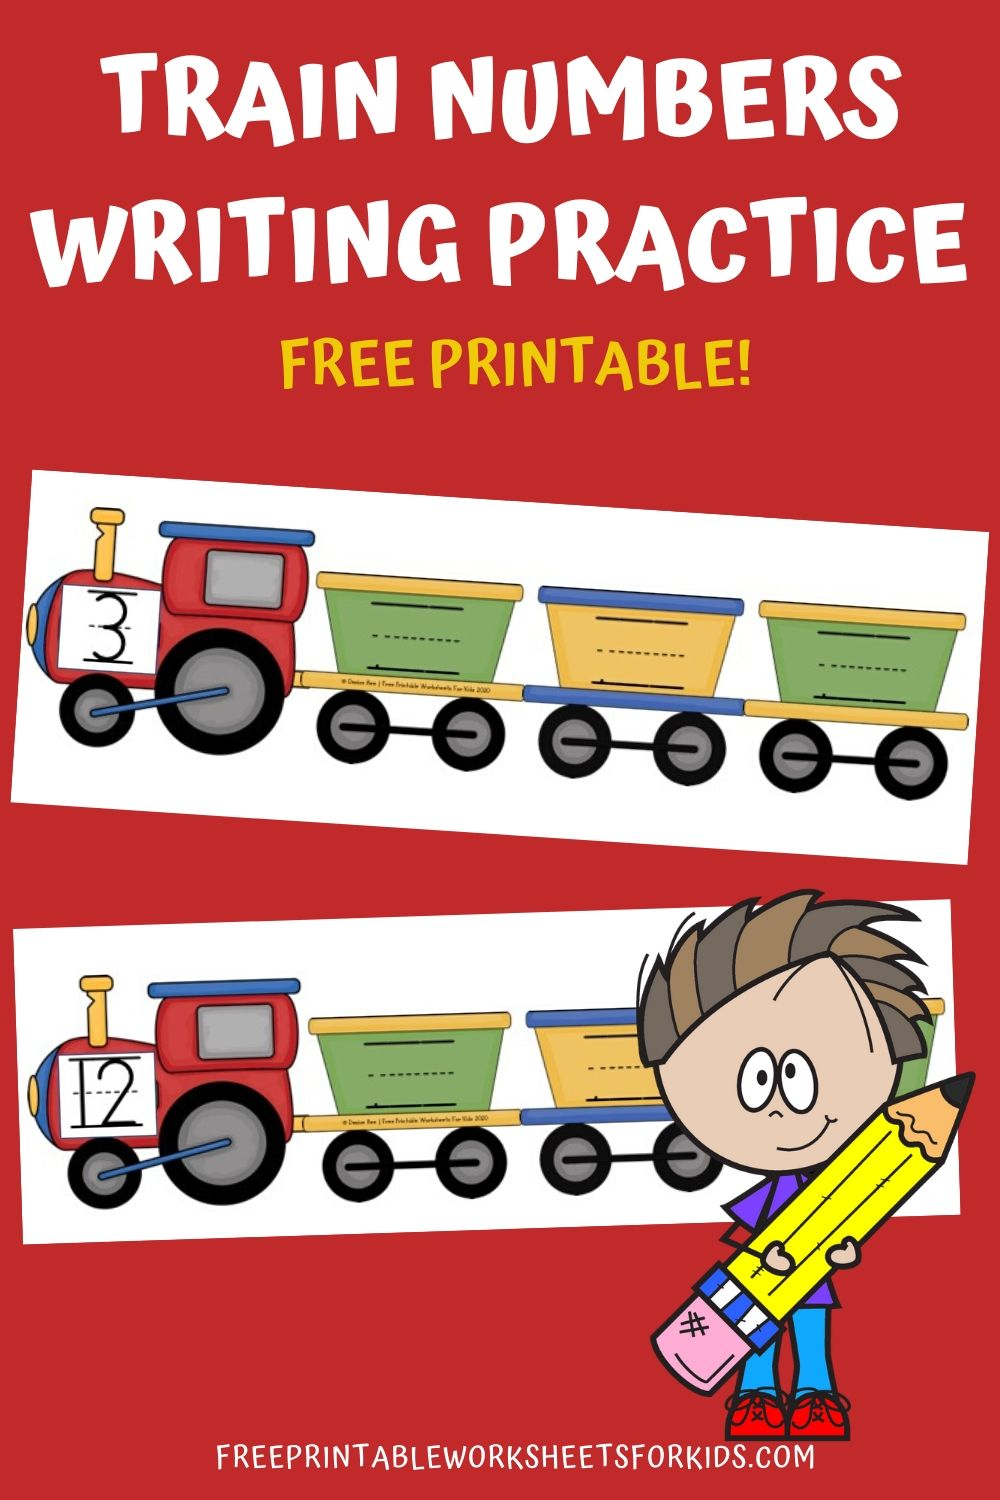 Fun Transportation Printables for Preschool and Kindergarten | Train Themed Number Writing Games | Hands On Math Homeschool Activities | Kids Classroom Center Ideas and Worksheets #FreePrintableWorksheetsForKids #train #transportation #number #writing